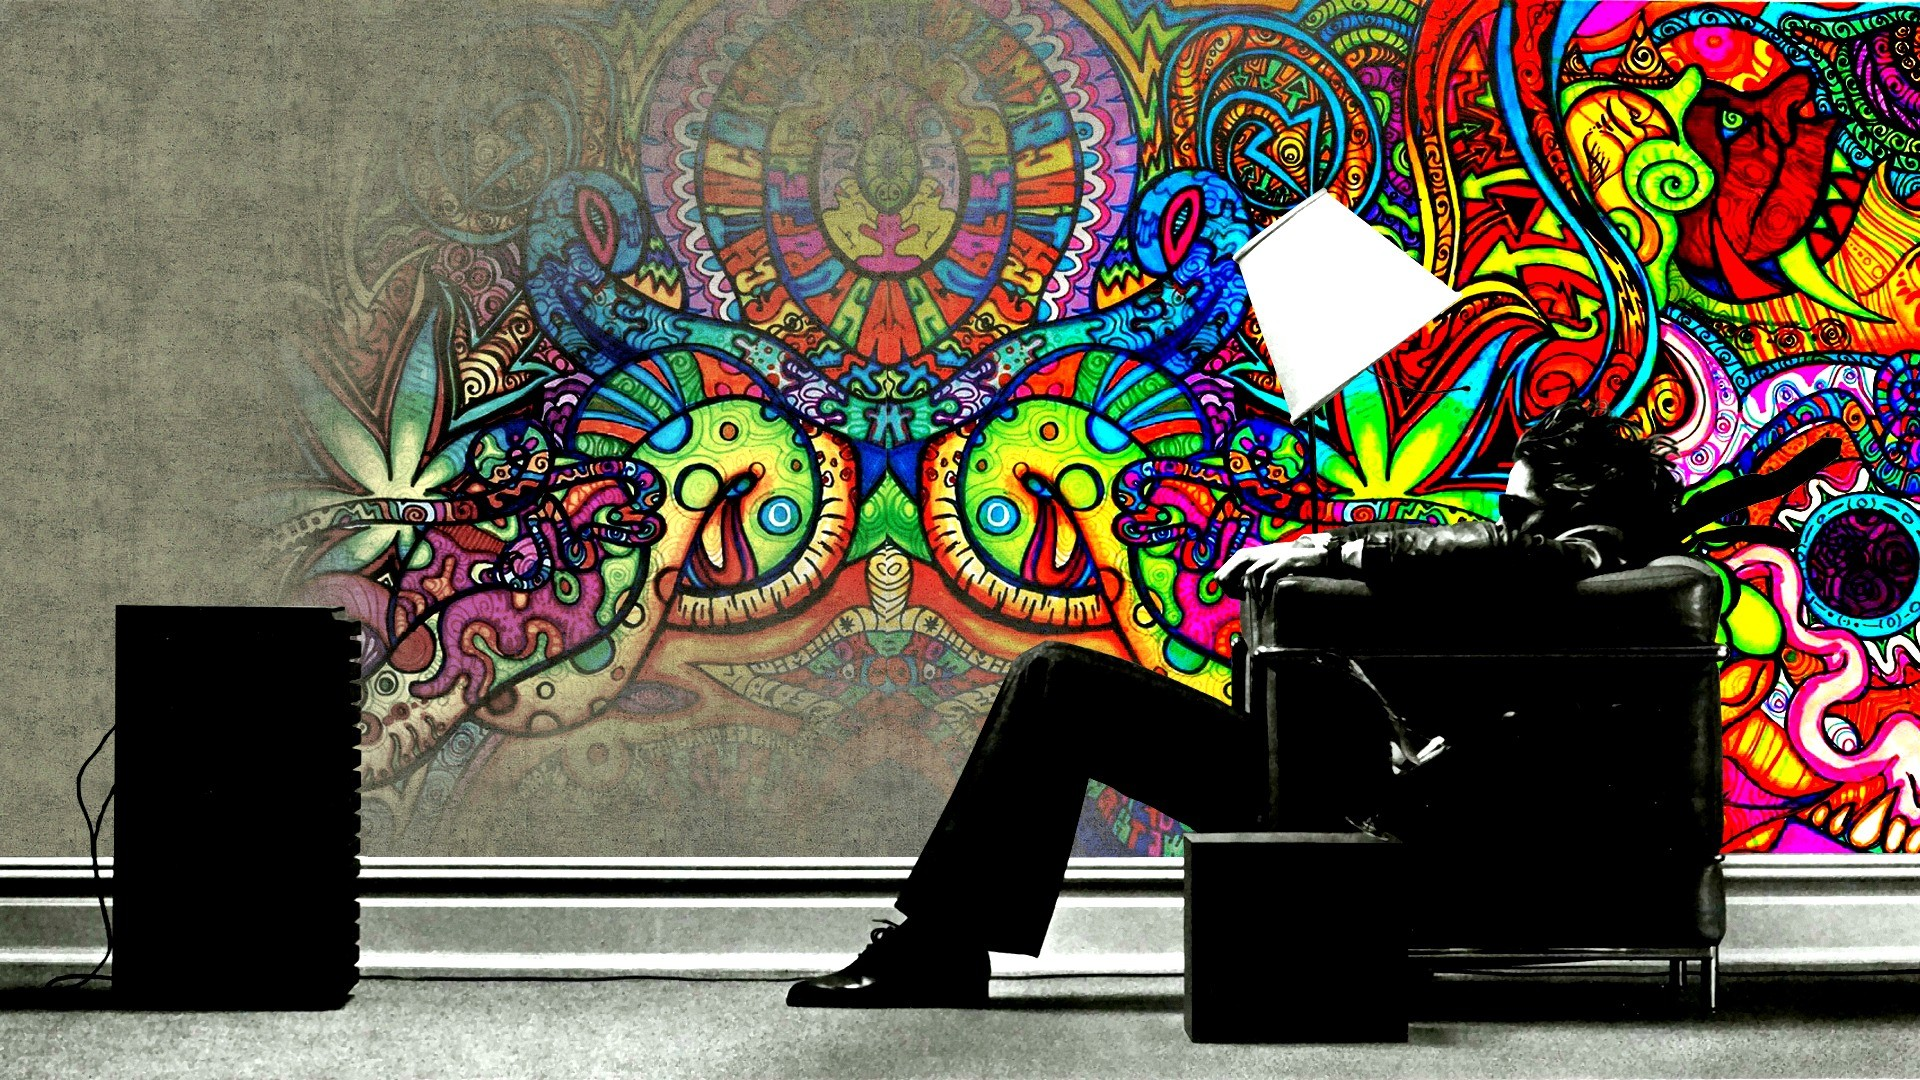 Psychedelic hd wallpapers wallpapertag - Psychedelic wallpaper hd ...